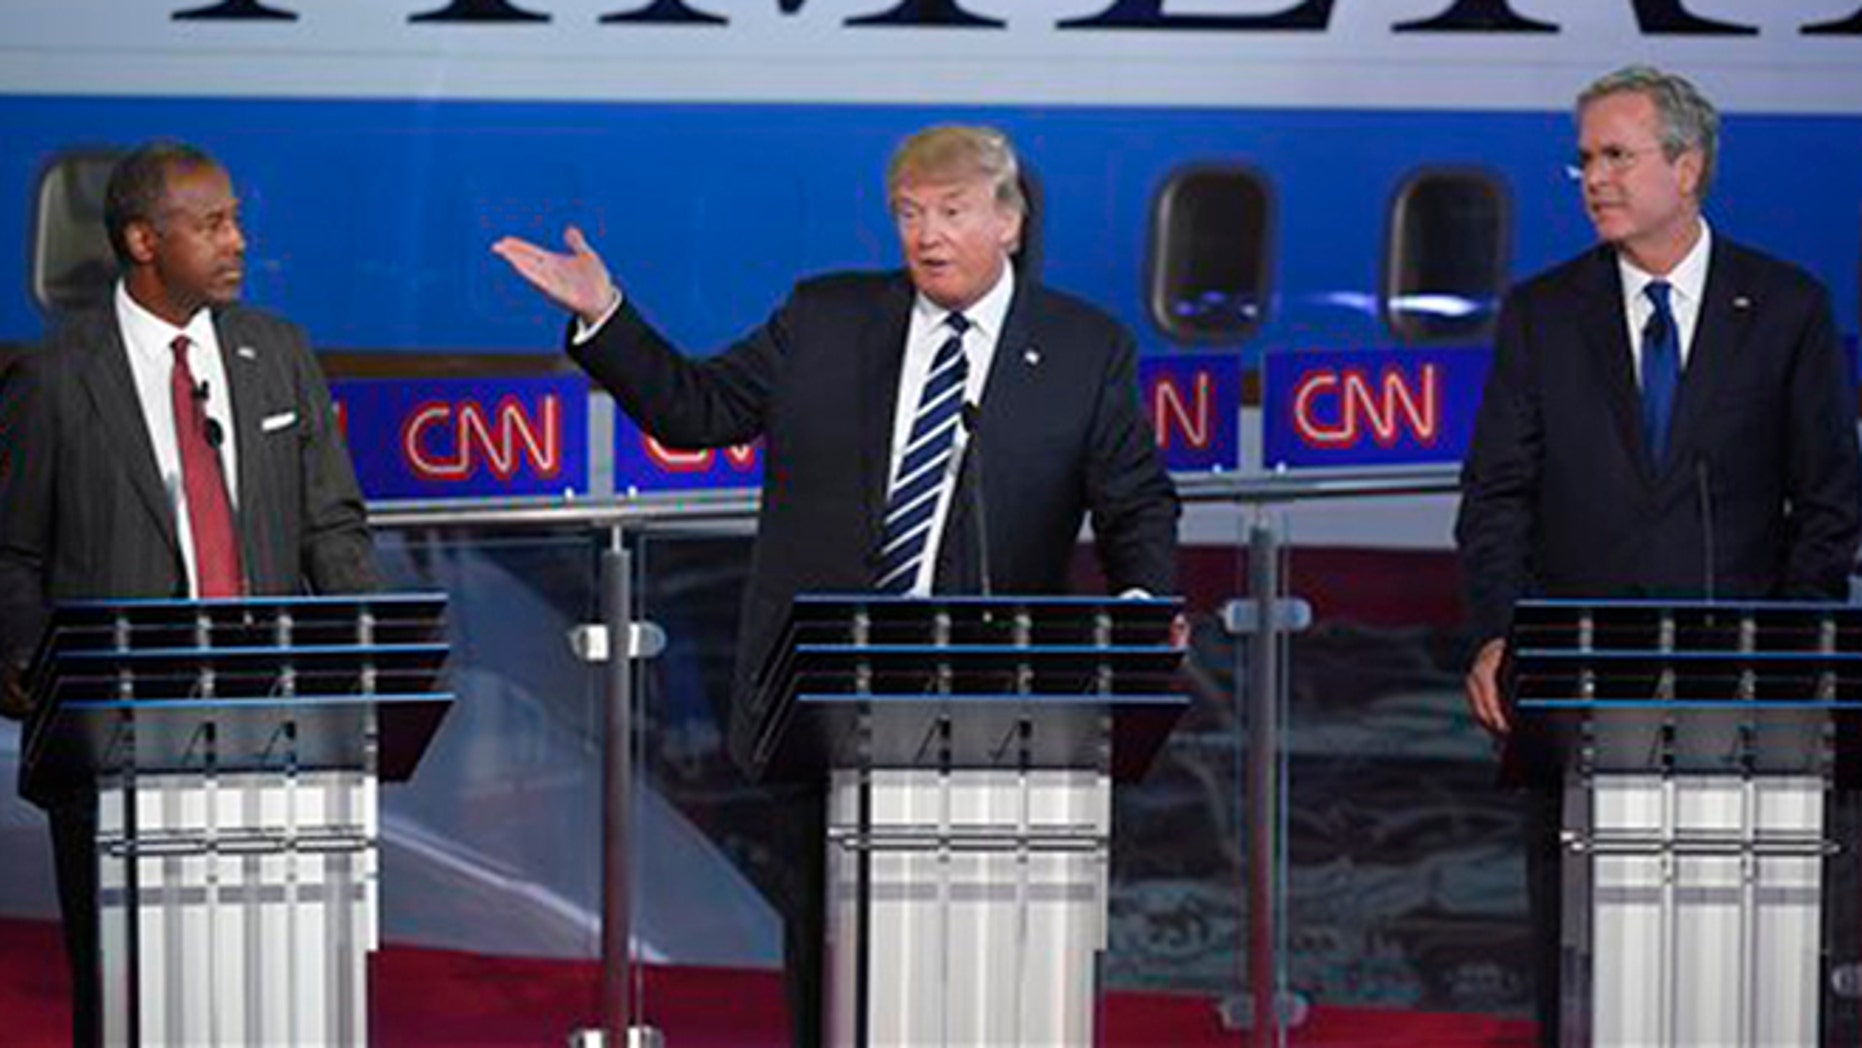 Republican presidential candidate, businessman Donald Trump, center, speaks as Ben Carson, left, and Jeb Bush, look on during the CNN Republican presidential debate at the Ronald Reagan Presidential Library and Museum on Wednesday, Sept. 16, 2015, in Simi Valley, Calif. (AP Photo/Mark J. Terrill)